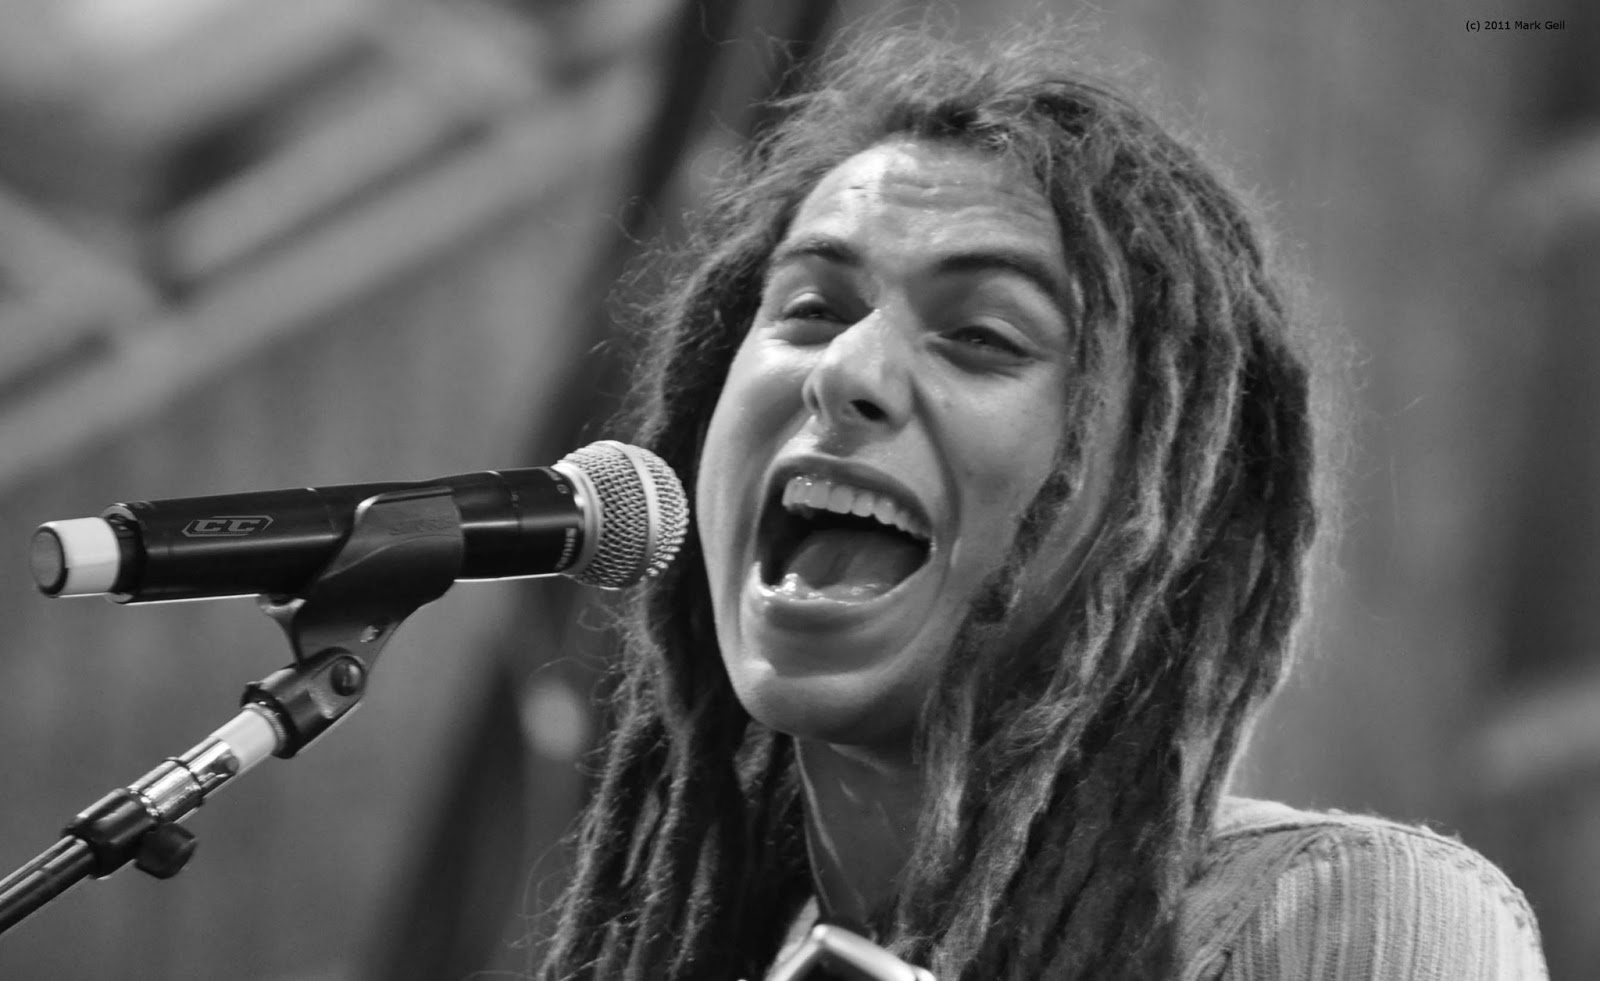 Jason Castro - Only A Mountain 2013 live singing in stage performance